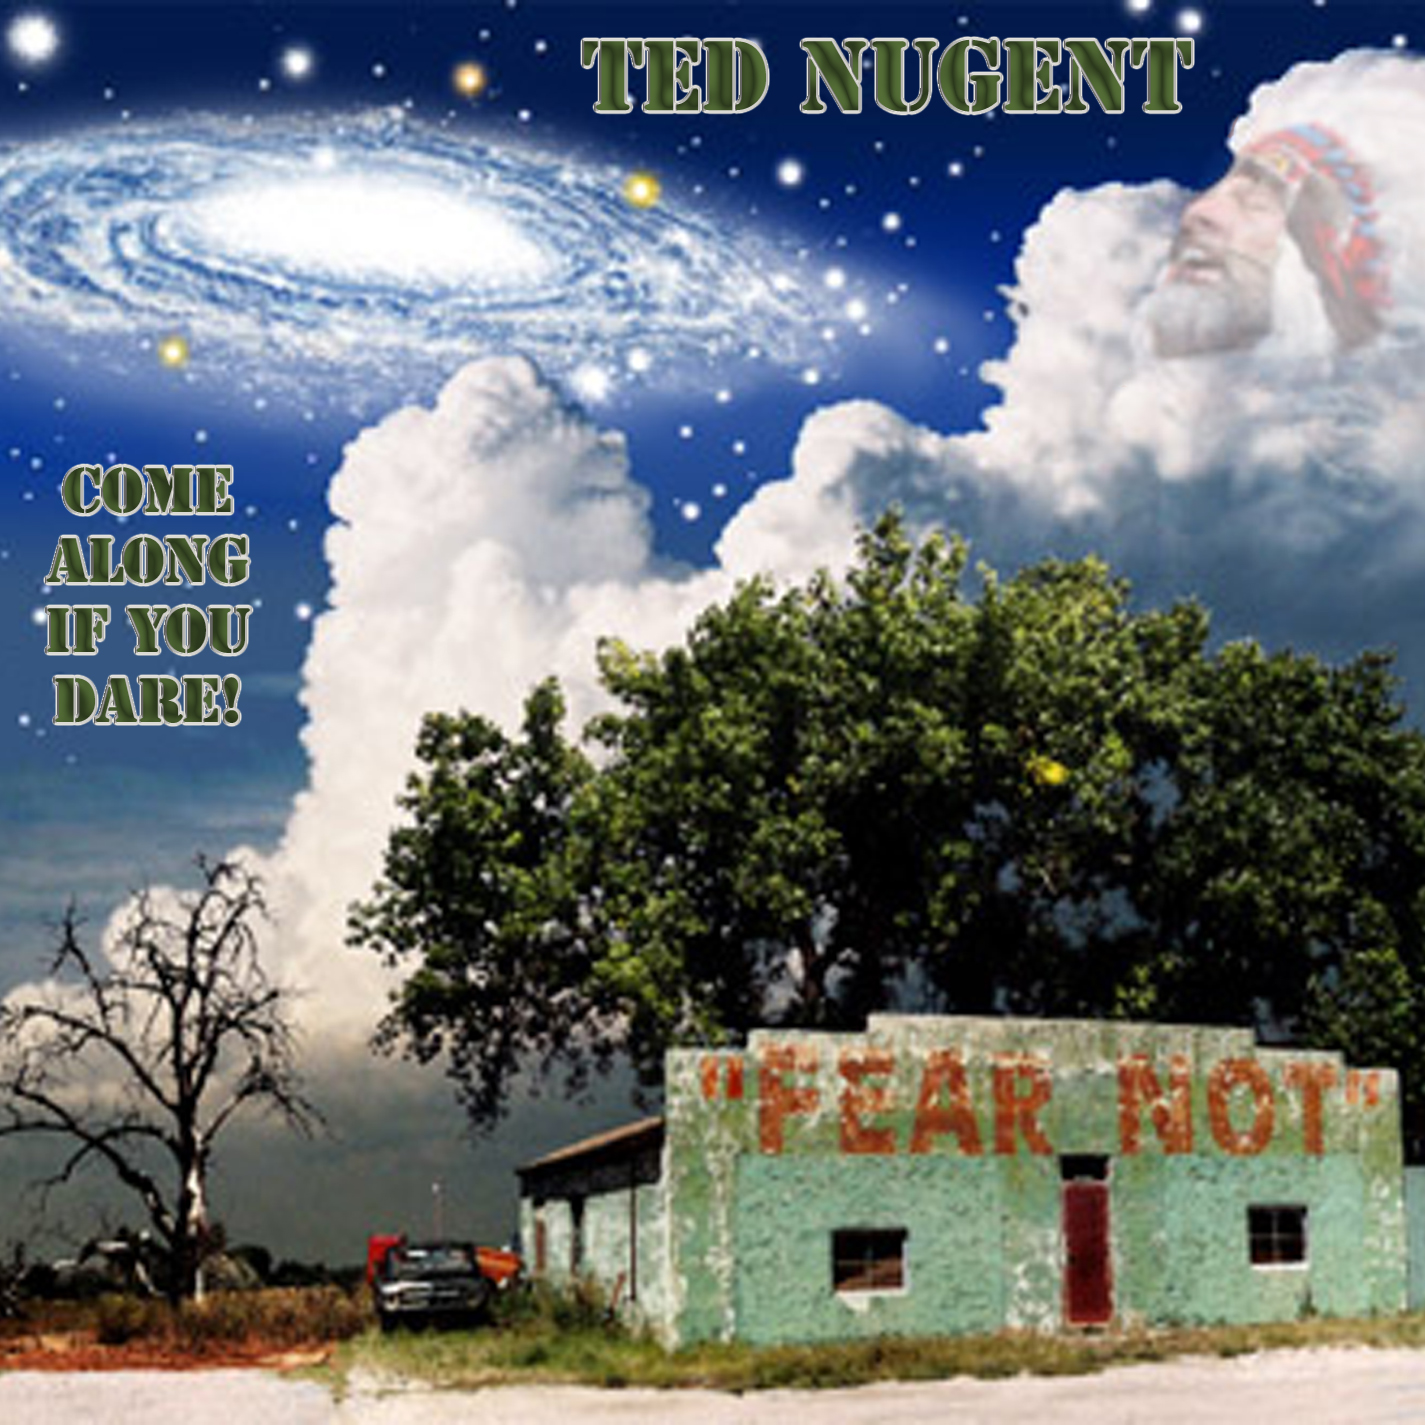 Ted Nugent - Come Along If You Dare! - Cover